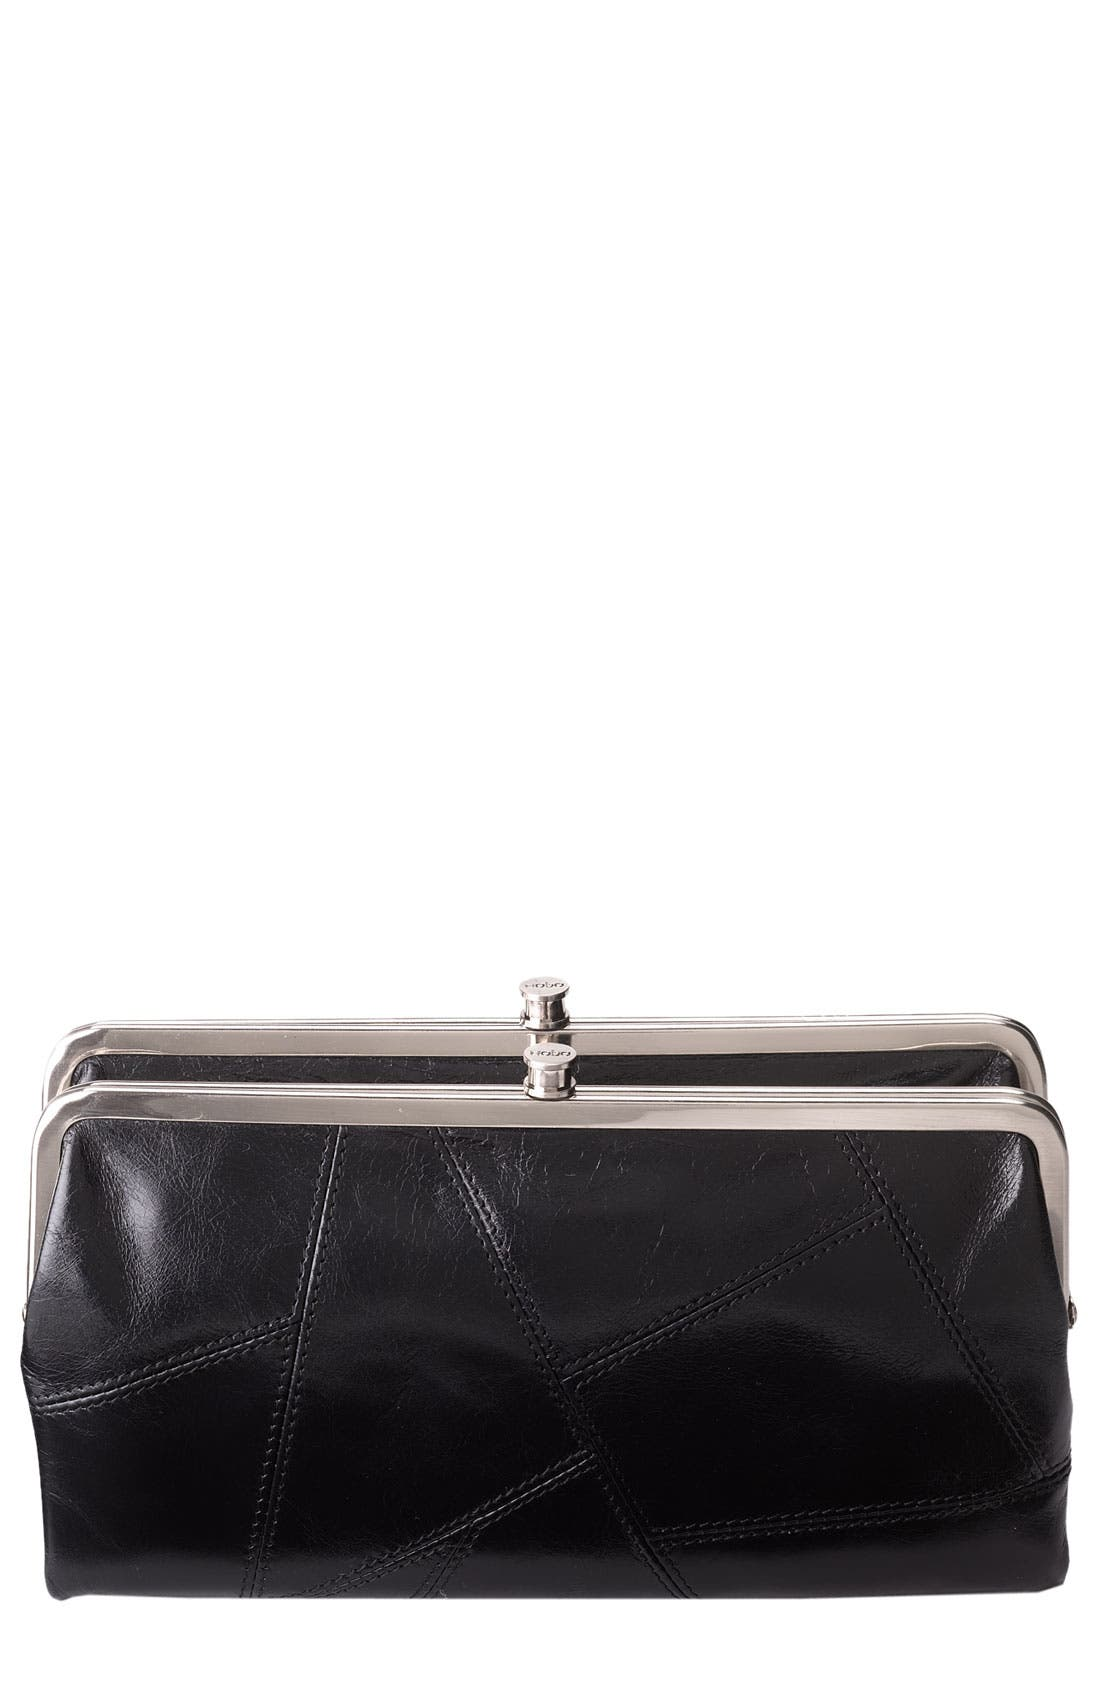 Alternate Image 1 Selected - Hobo 'Lauren' Pieced Double Frame Clutch Wallet